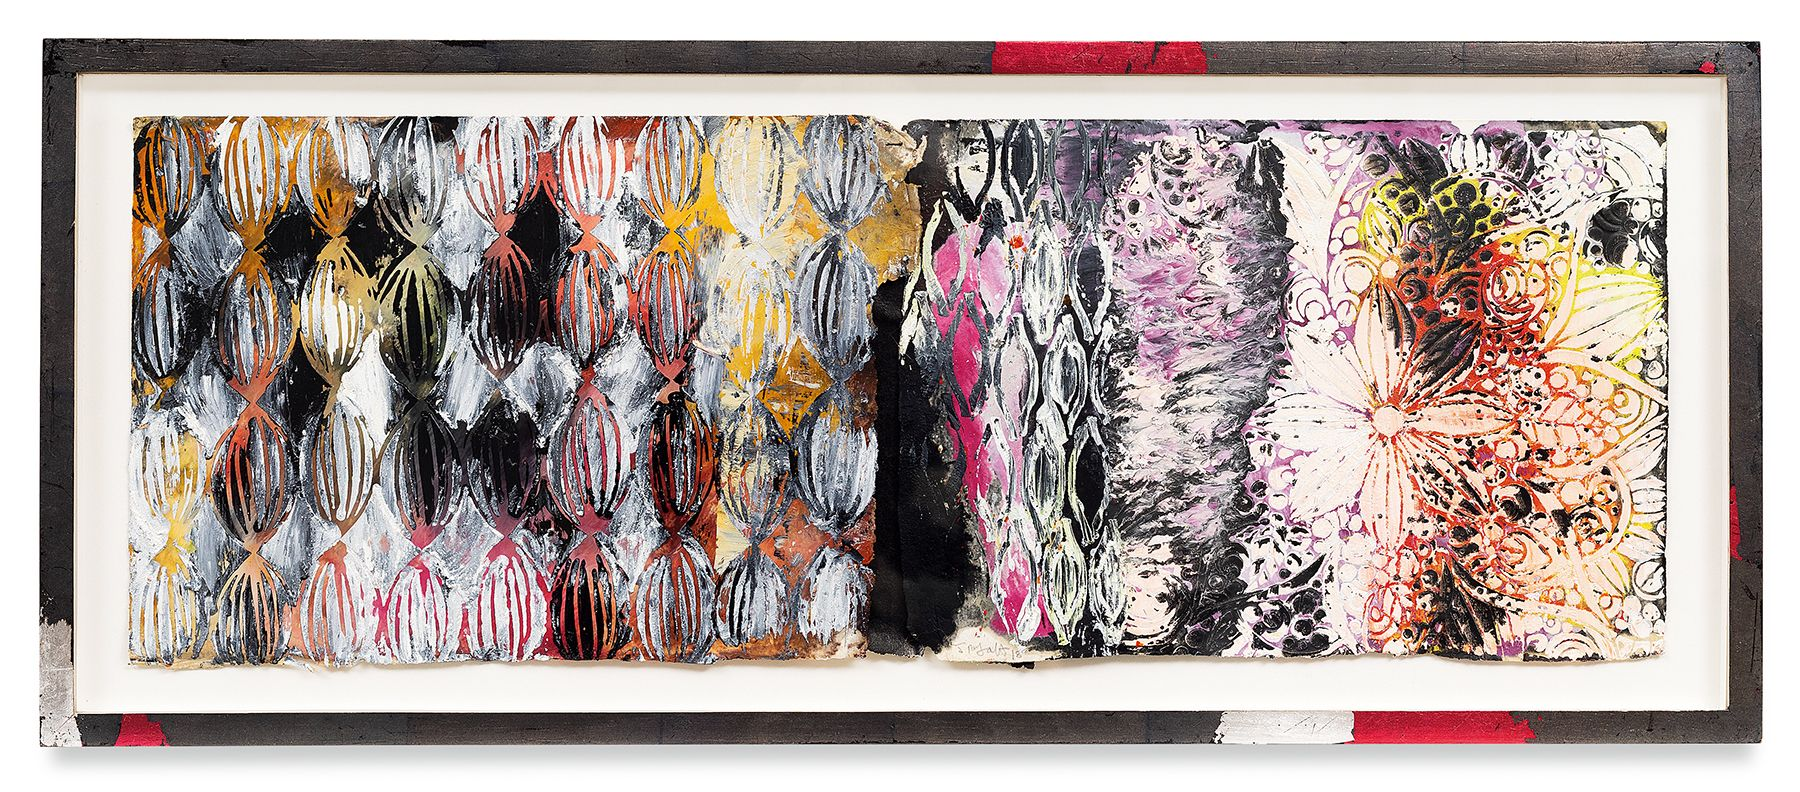 Year of the Rat 8, 2018, Vintage Indian paper, oil stick, encaustic, vintage Indian paper, in artist's frame, 13.5 x 33 inches, 34.3 x 83.8 cm, MMG#30607